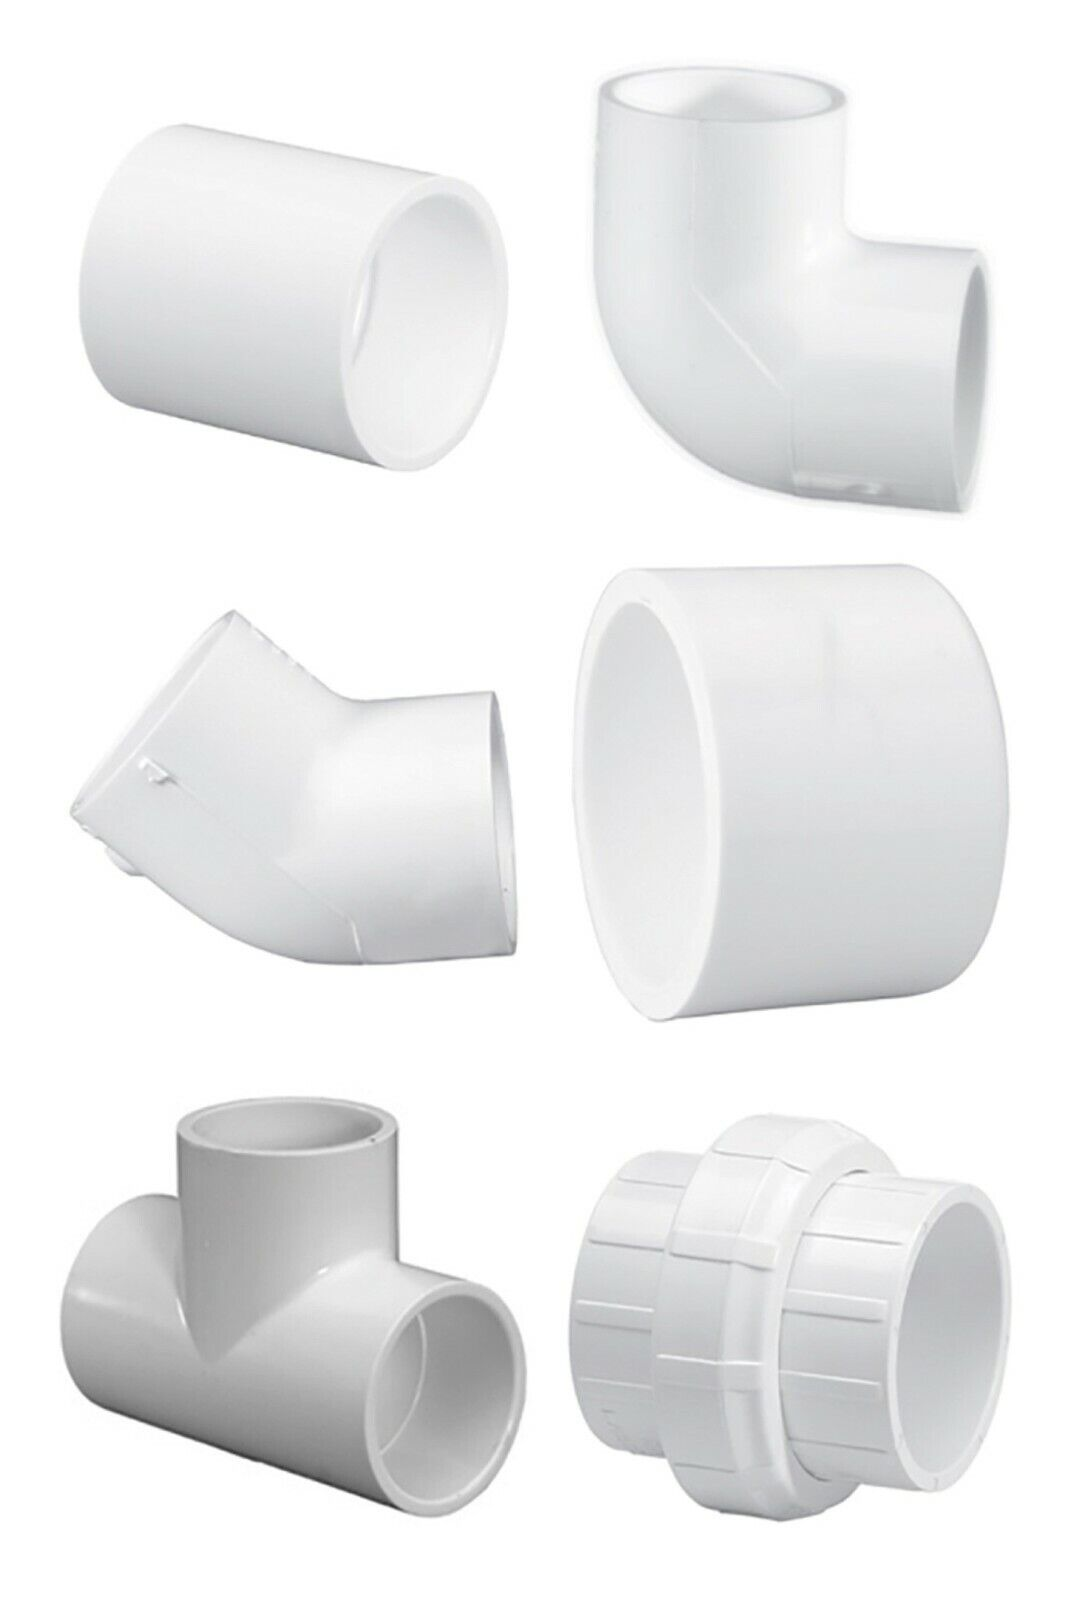 SWIMMING POOL PIPE/IRRIGATION FITTINGS -1